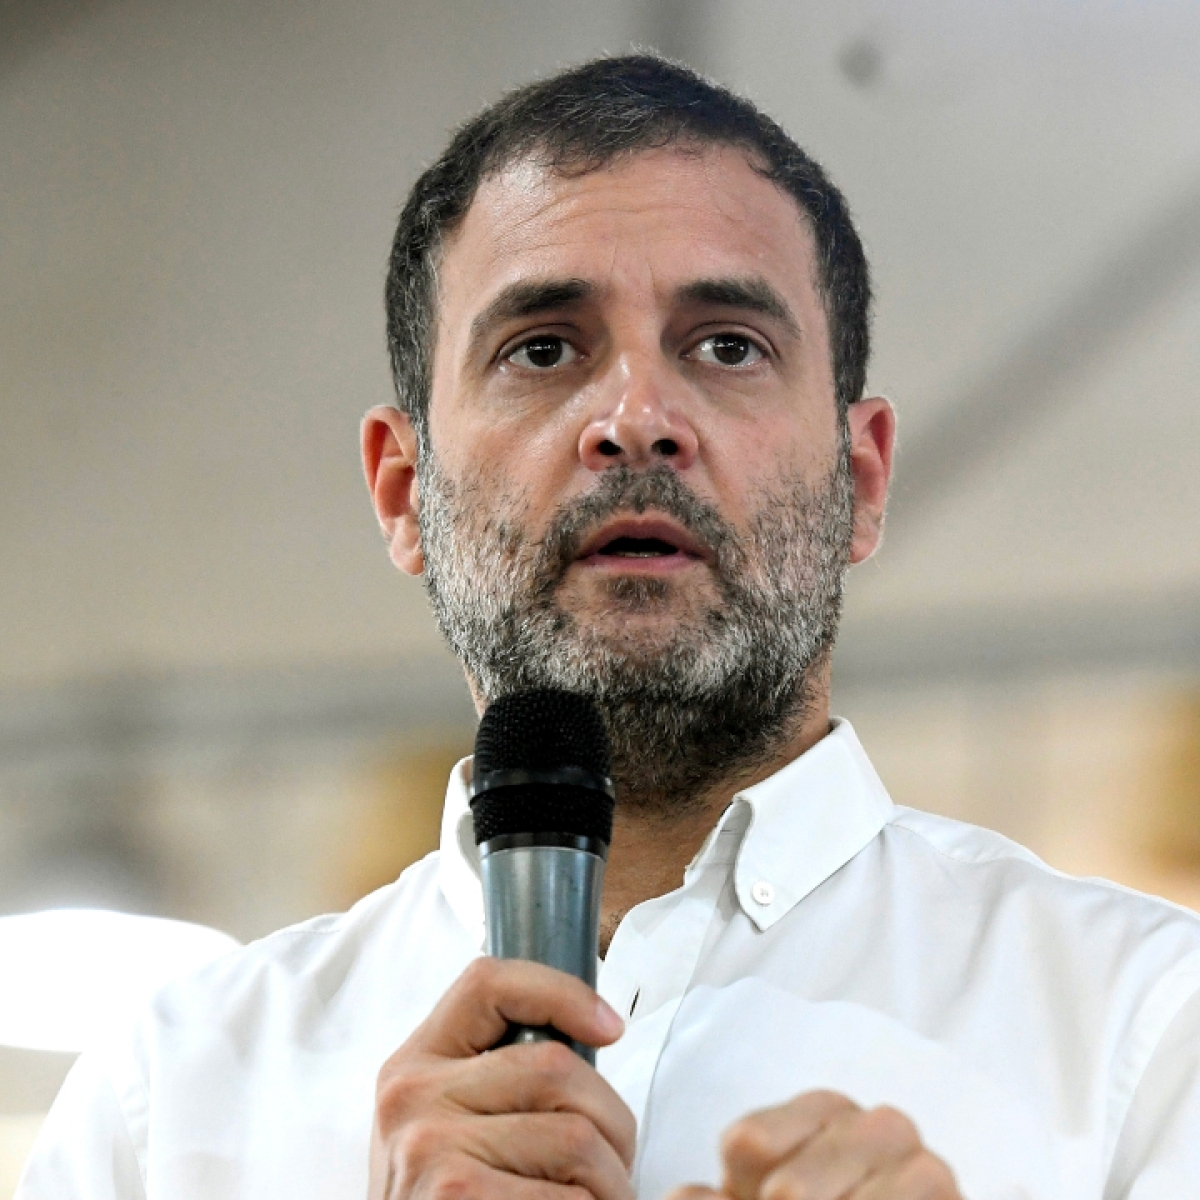 'Let's all do our bit to save lives': Rahul Gandhi amid COVID-19 surge